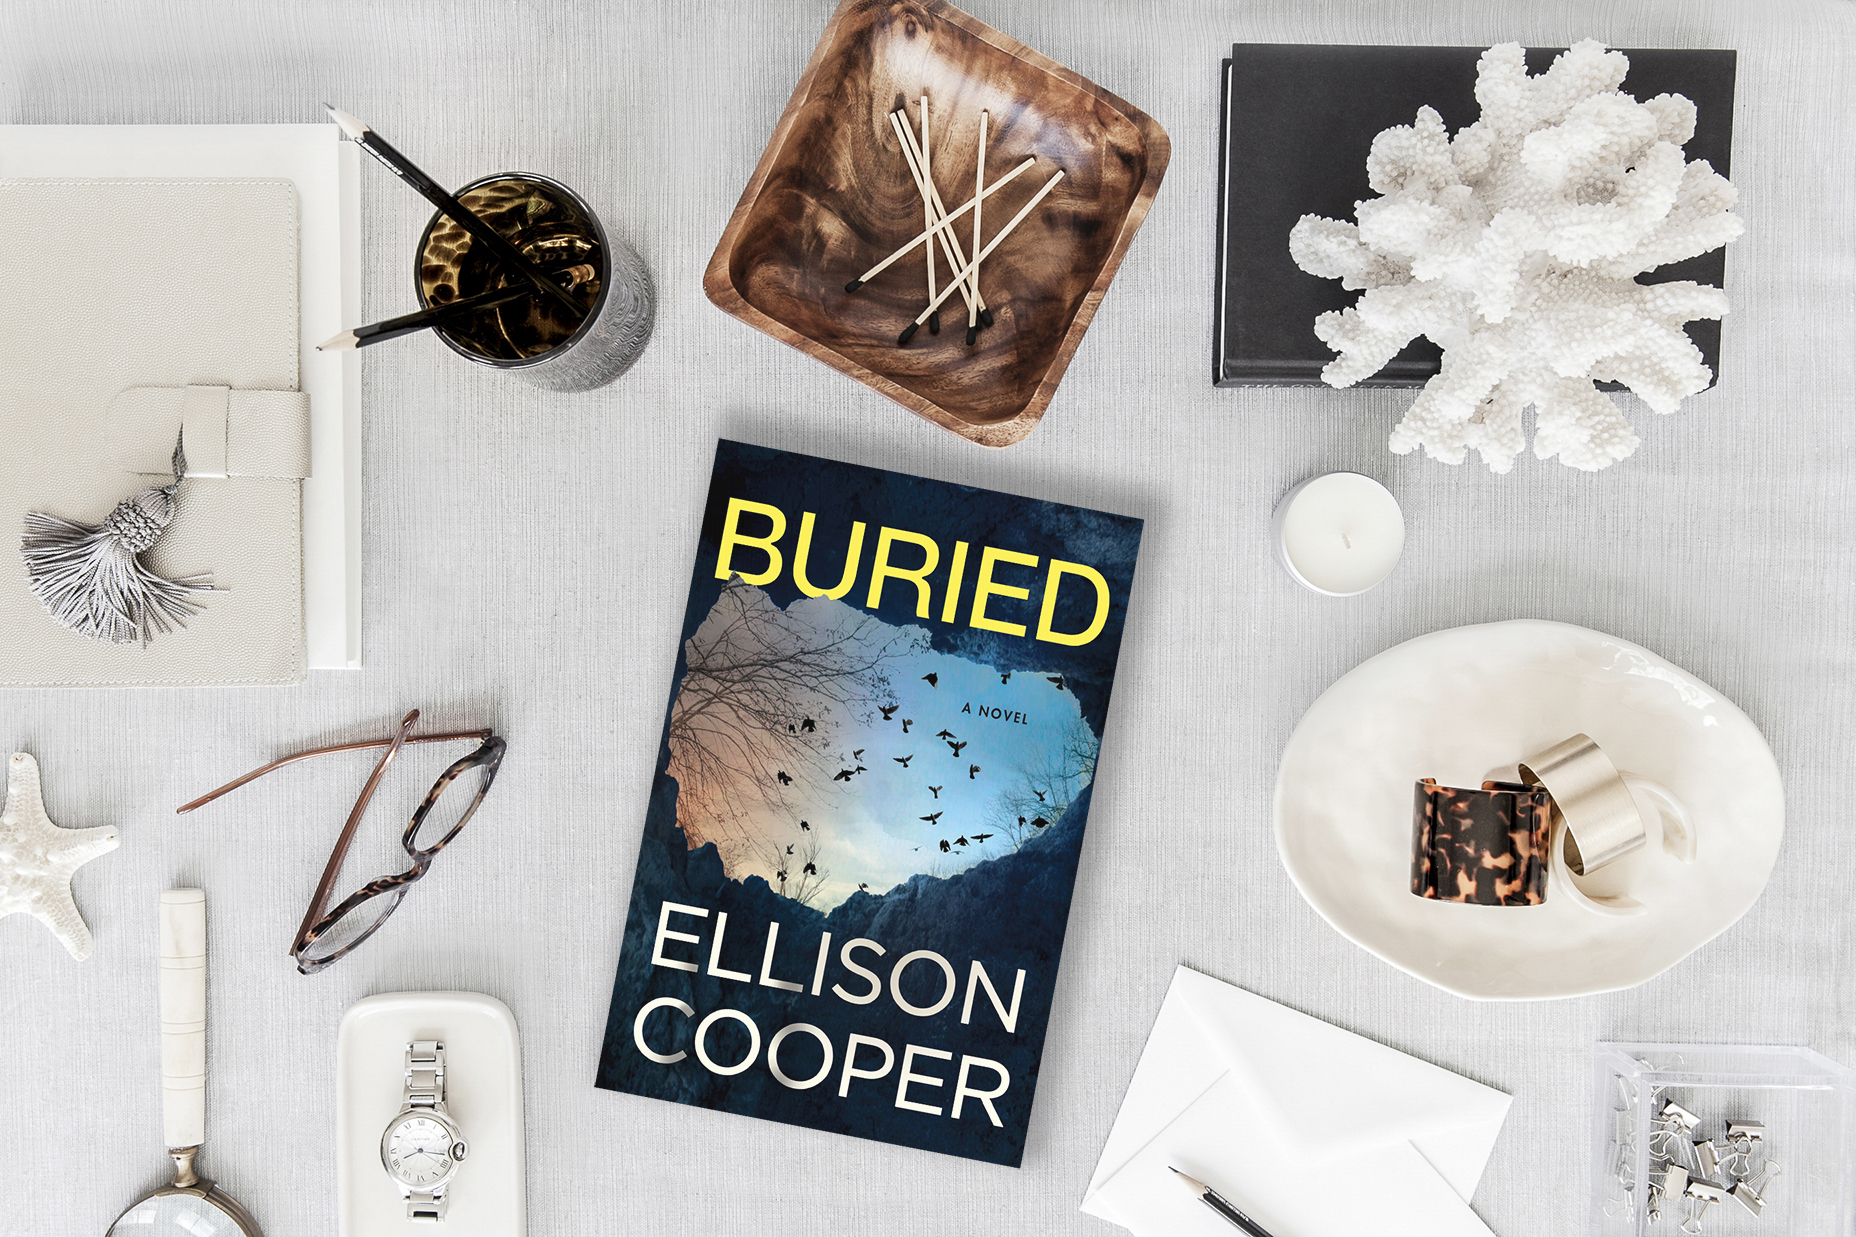 Buried by Ellison Cooper. Review by Jessica Mack on Latest Book Crush.